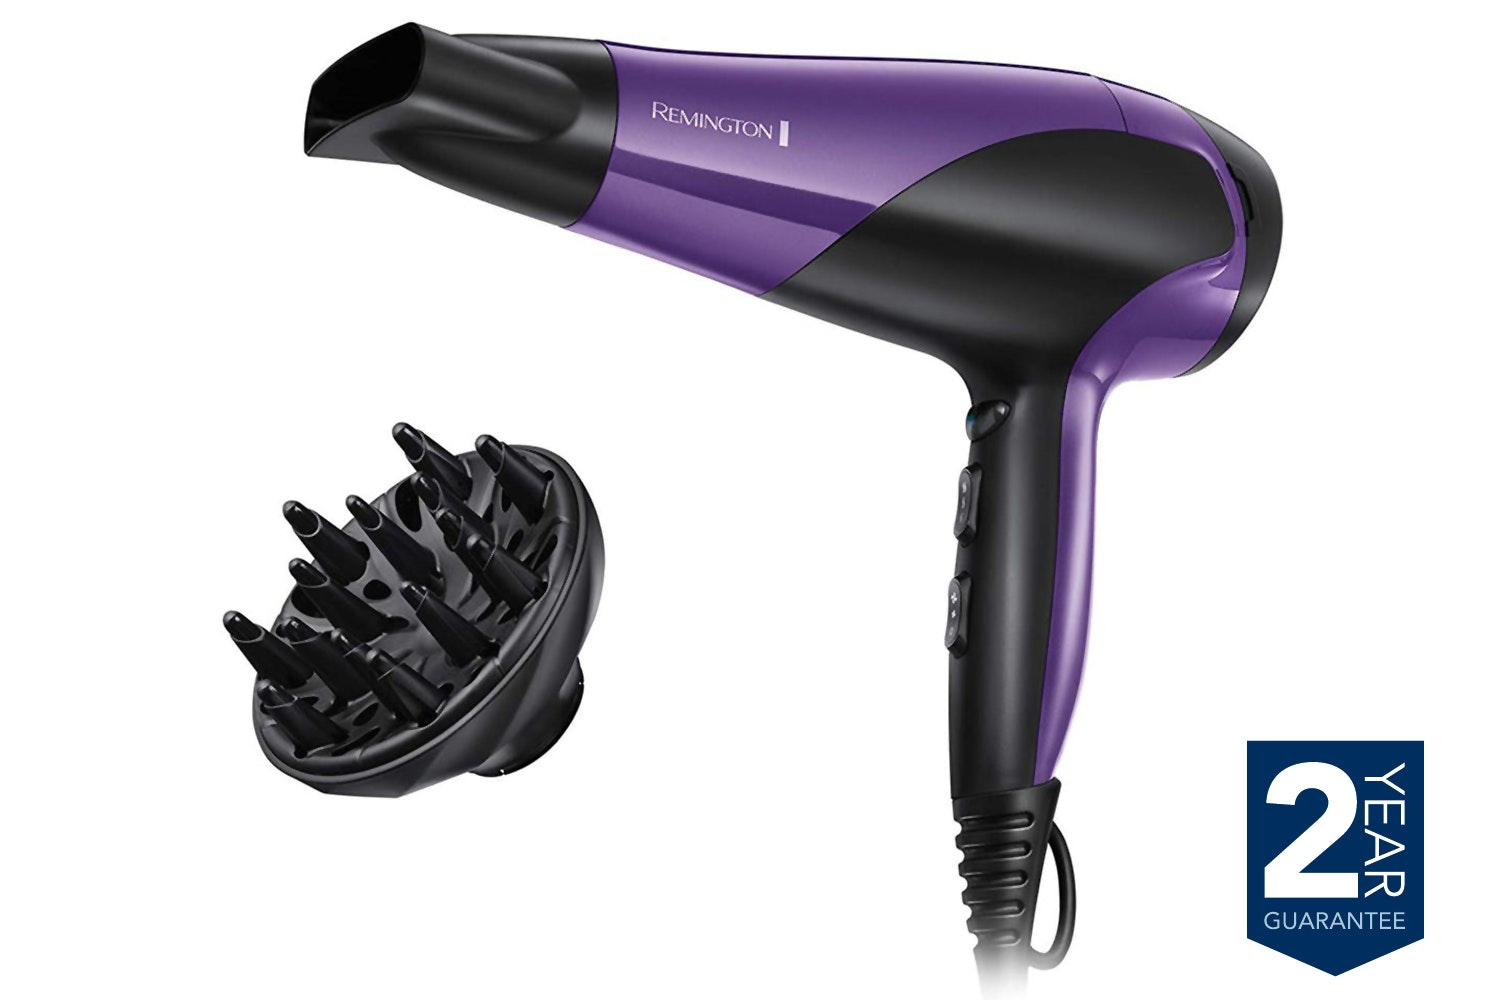 Remington Ionic Tourmaline Hair Dryer |  D3190